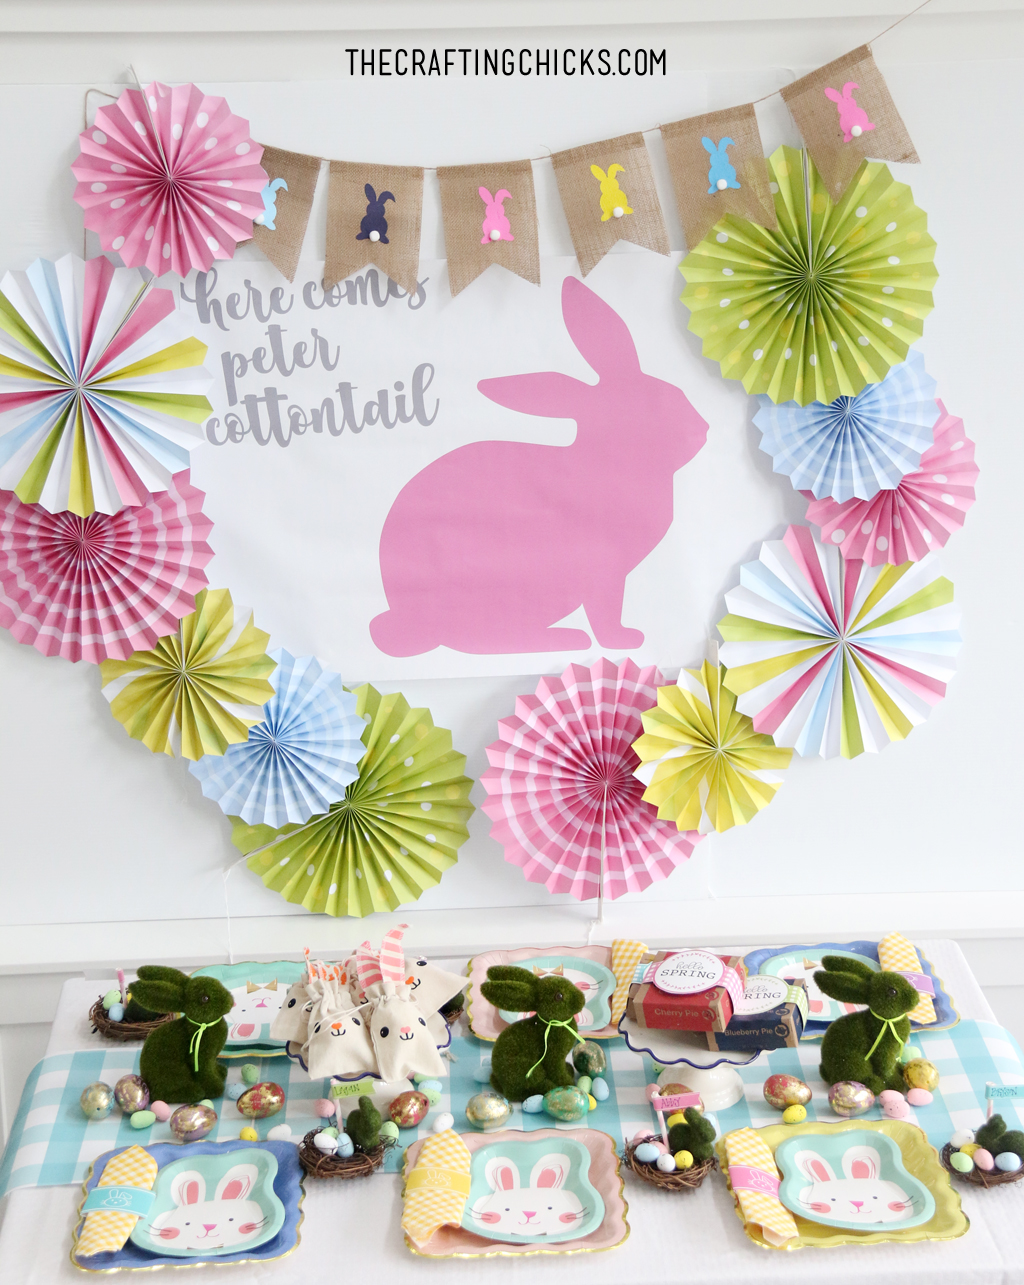 Easter table for kids with bunny paper plates, yellow gingham napkin and bunny decorations. Big Pink bunny printable backdrop